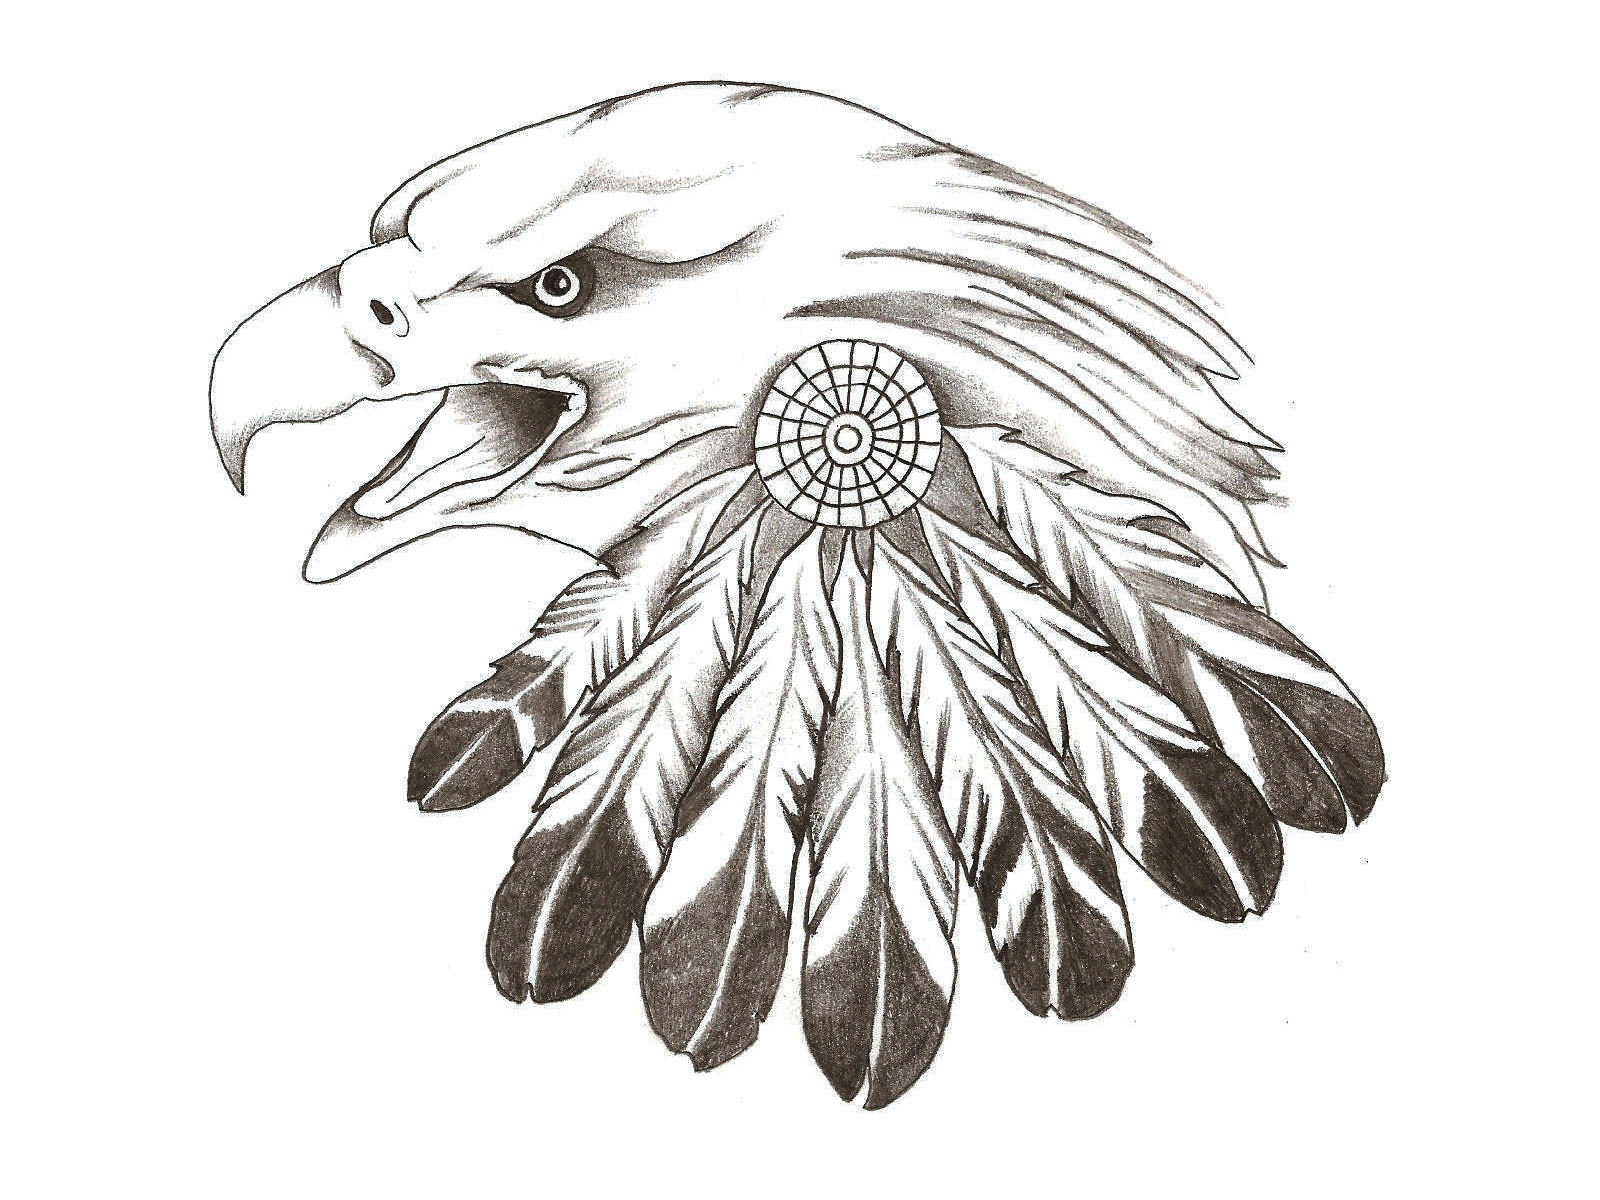 Native american eagle with feather decoration tattoo design